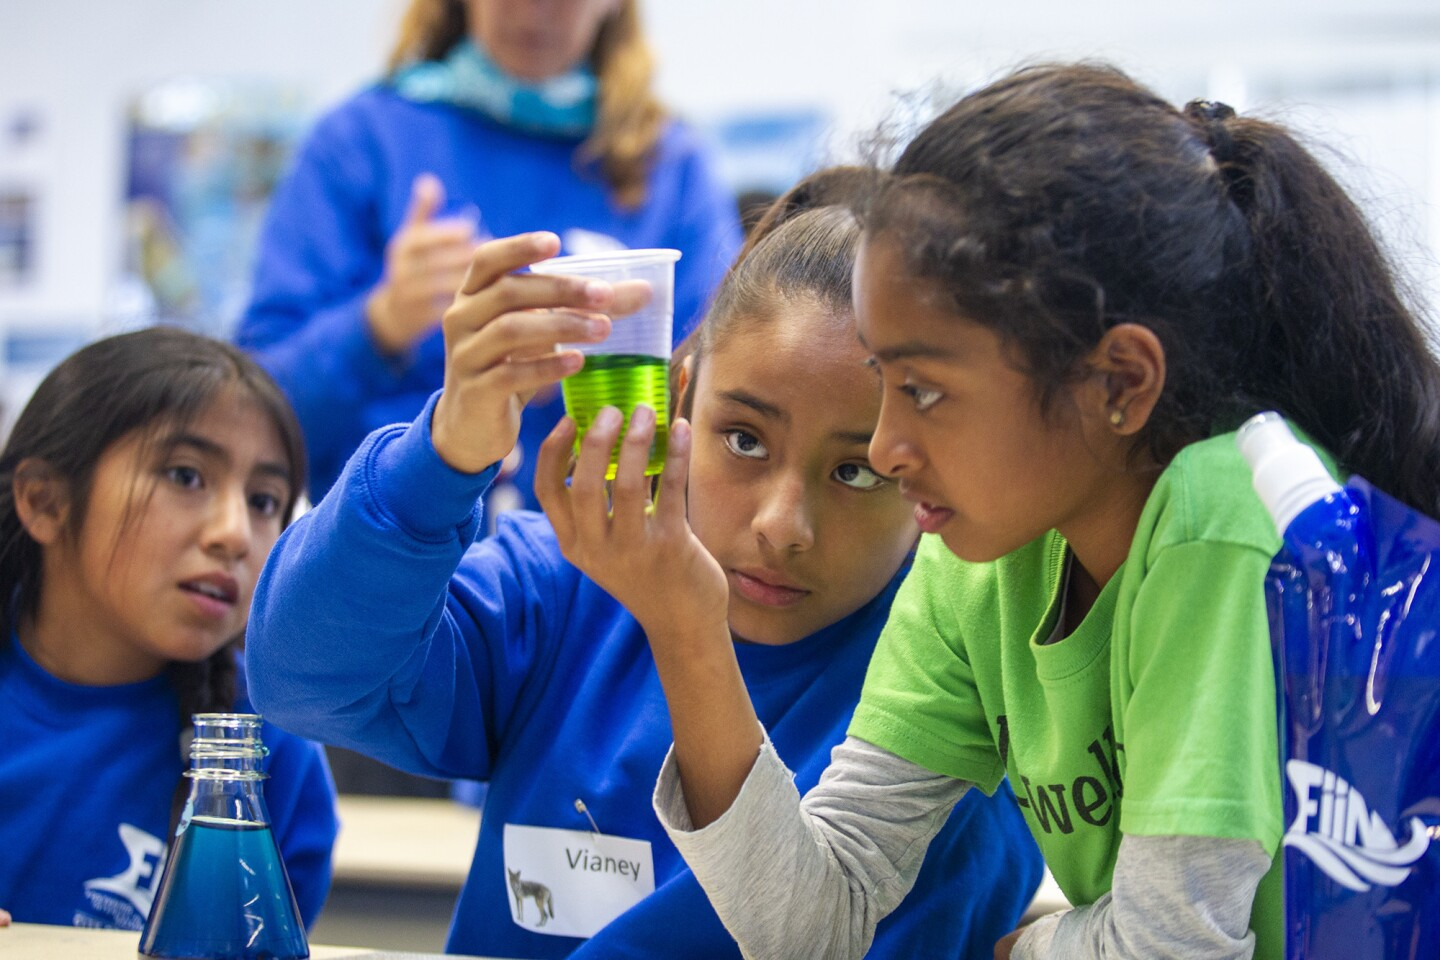 Valeria Pedraza, 11, left, Vianey Olivier, 10, and Kiara Padilla, 10, watch a beaker for a reaction after mixing salt water and fresh water during the FiiN (Fostering interest in Nature) program at the Back Bay Science Center in Newport Beach on Tuesday.